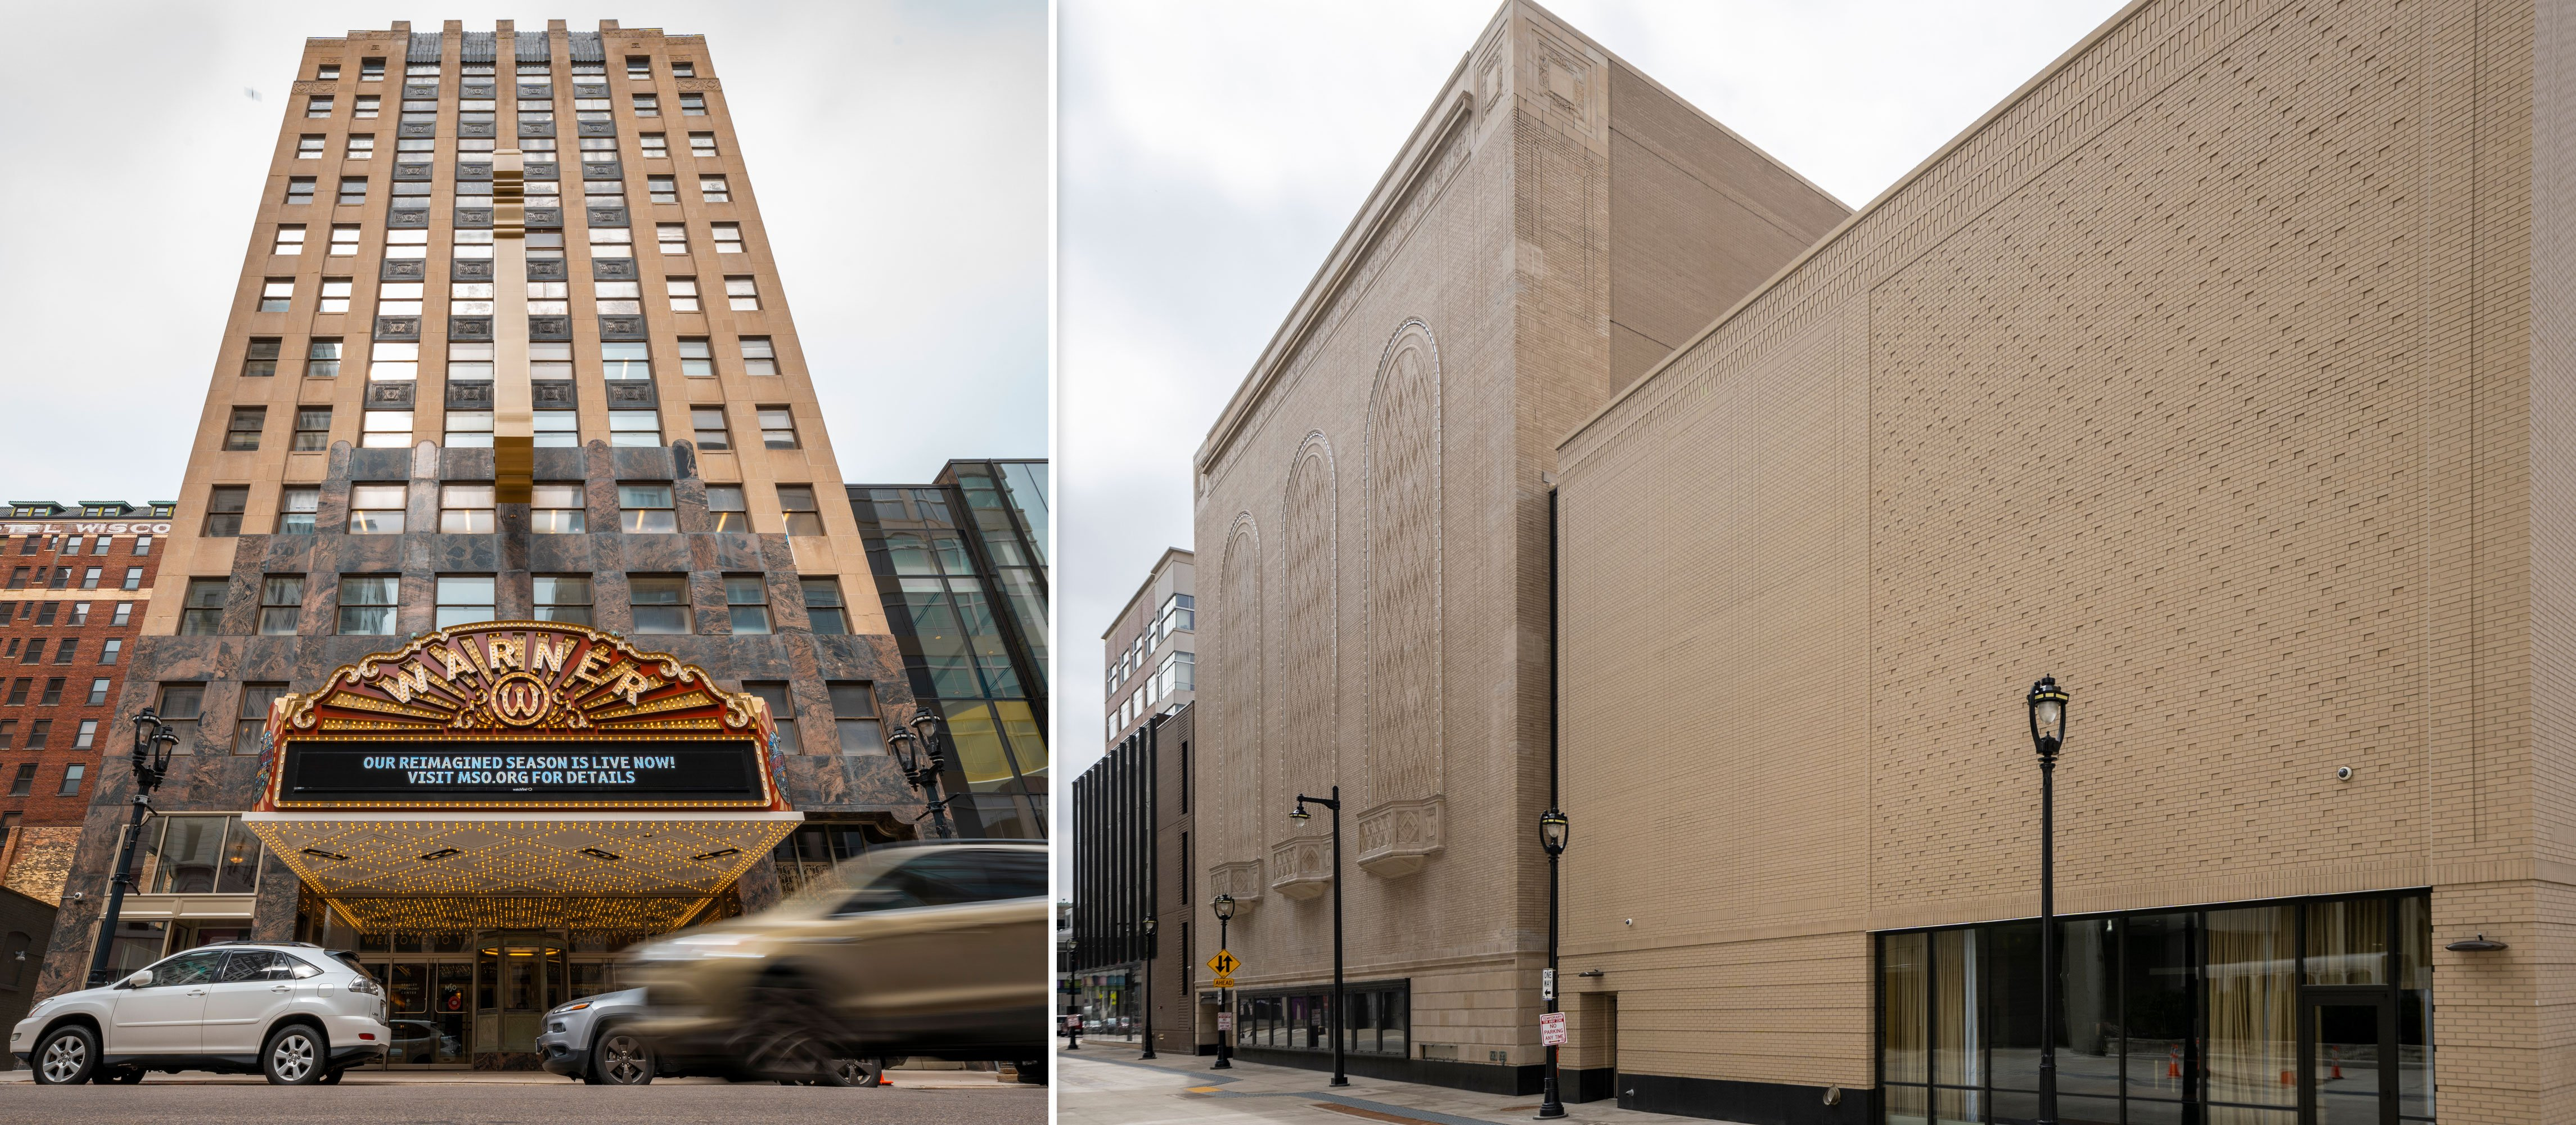 Bradley Symphony Center Warner Grand Theatre facade & historic wall of Milwaukee Symphony Orchestra